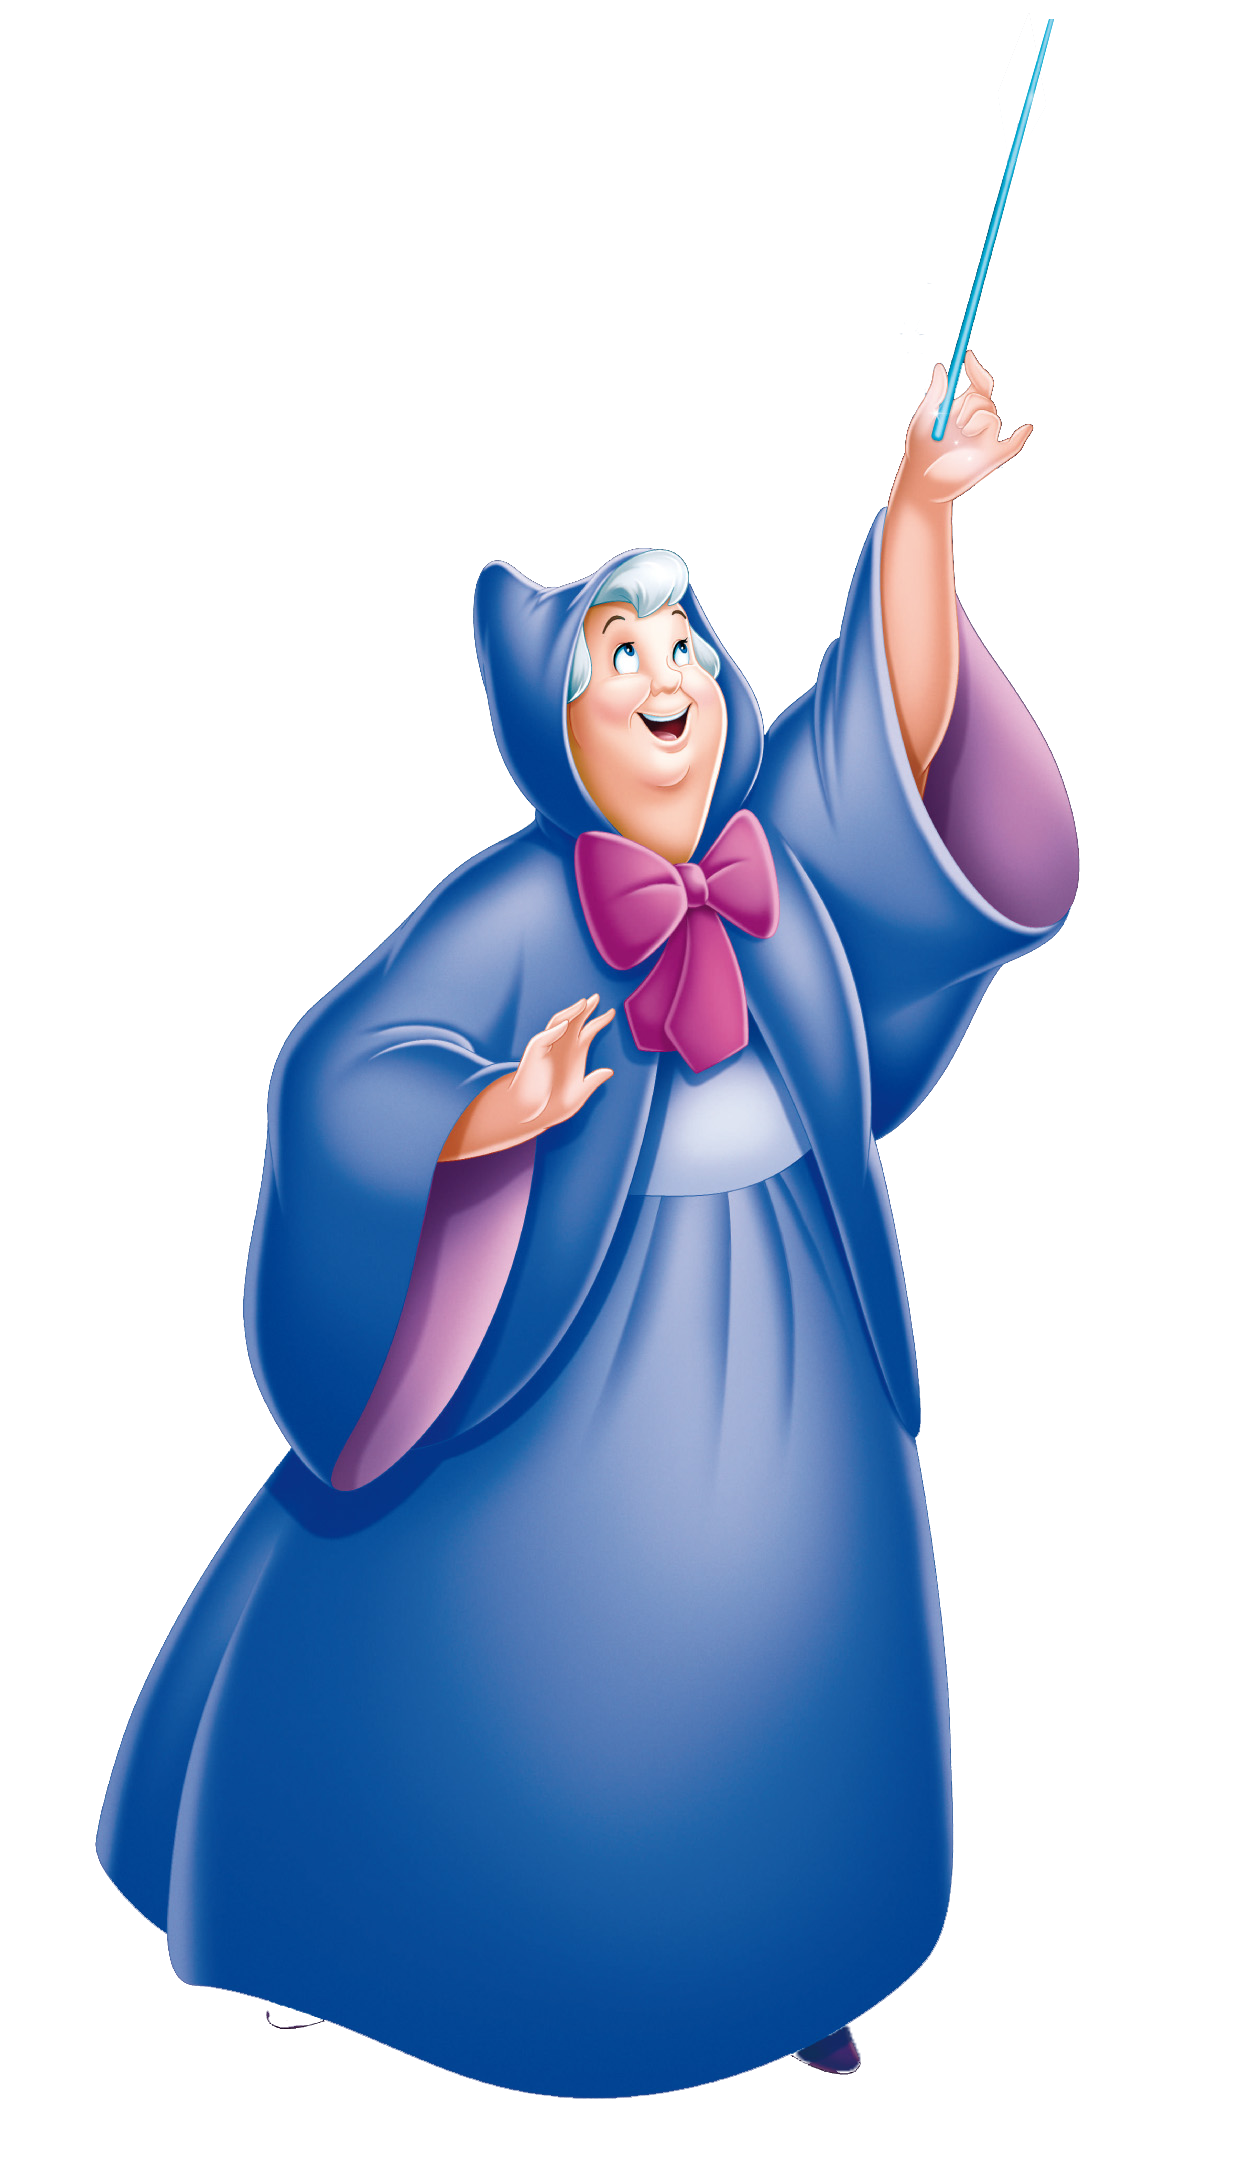 Cinderella mouse png. Fairy godmother disney wiki